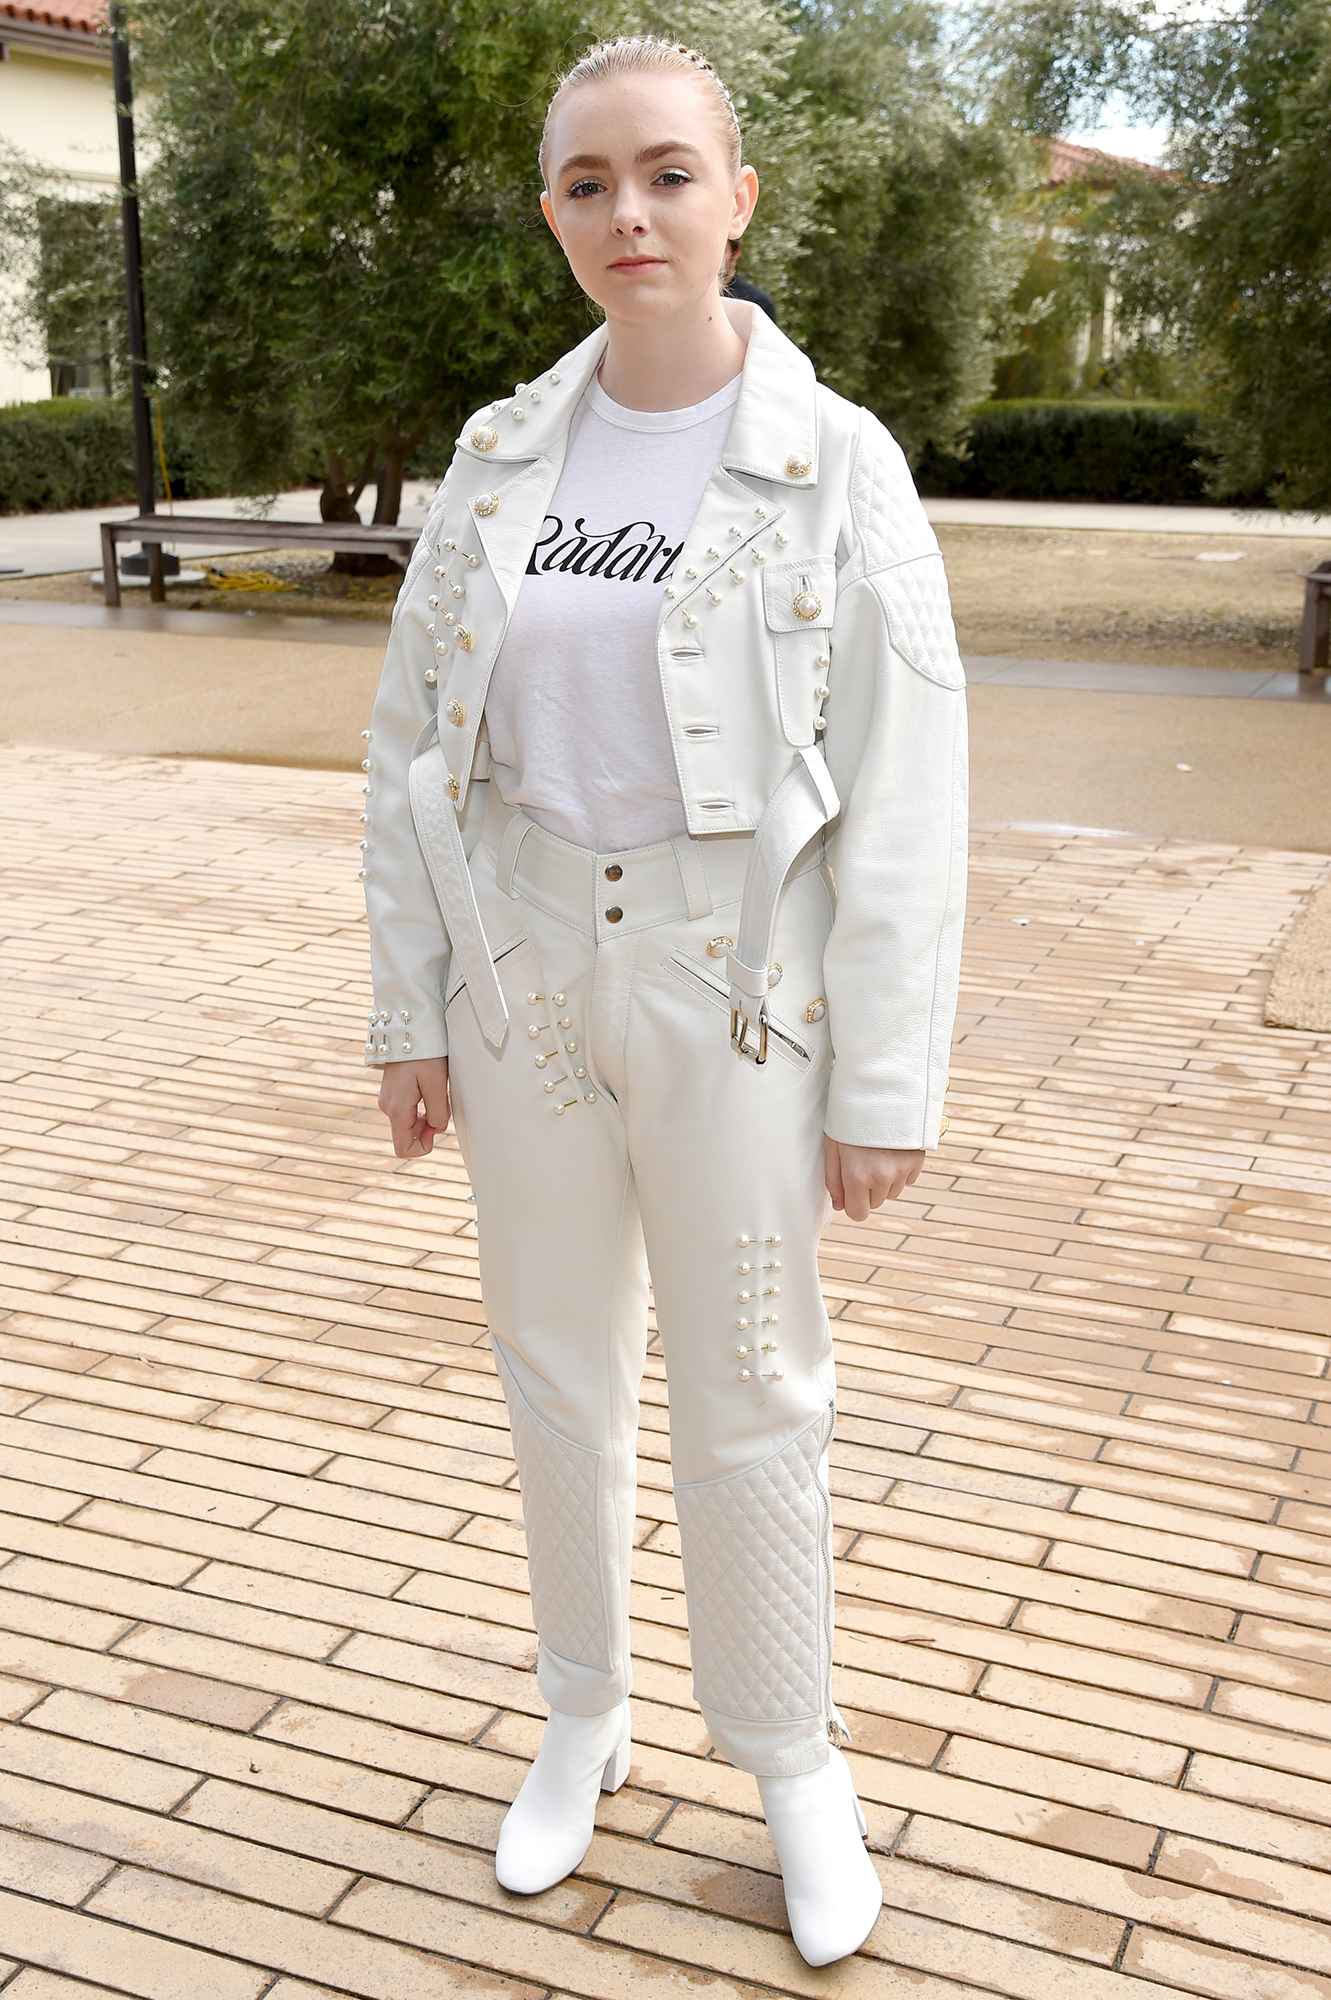 Hollywood's Freshest Faces Were Front Row at the Rodarte Show - She wears the pants! The Eighth Grade actress rocked a pearl-adorned white leather cropped jacket and matching quilted trousers.